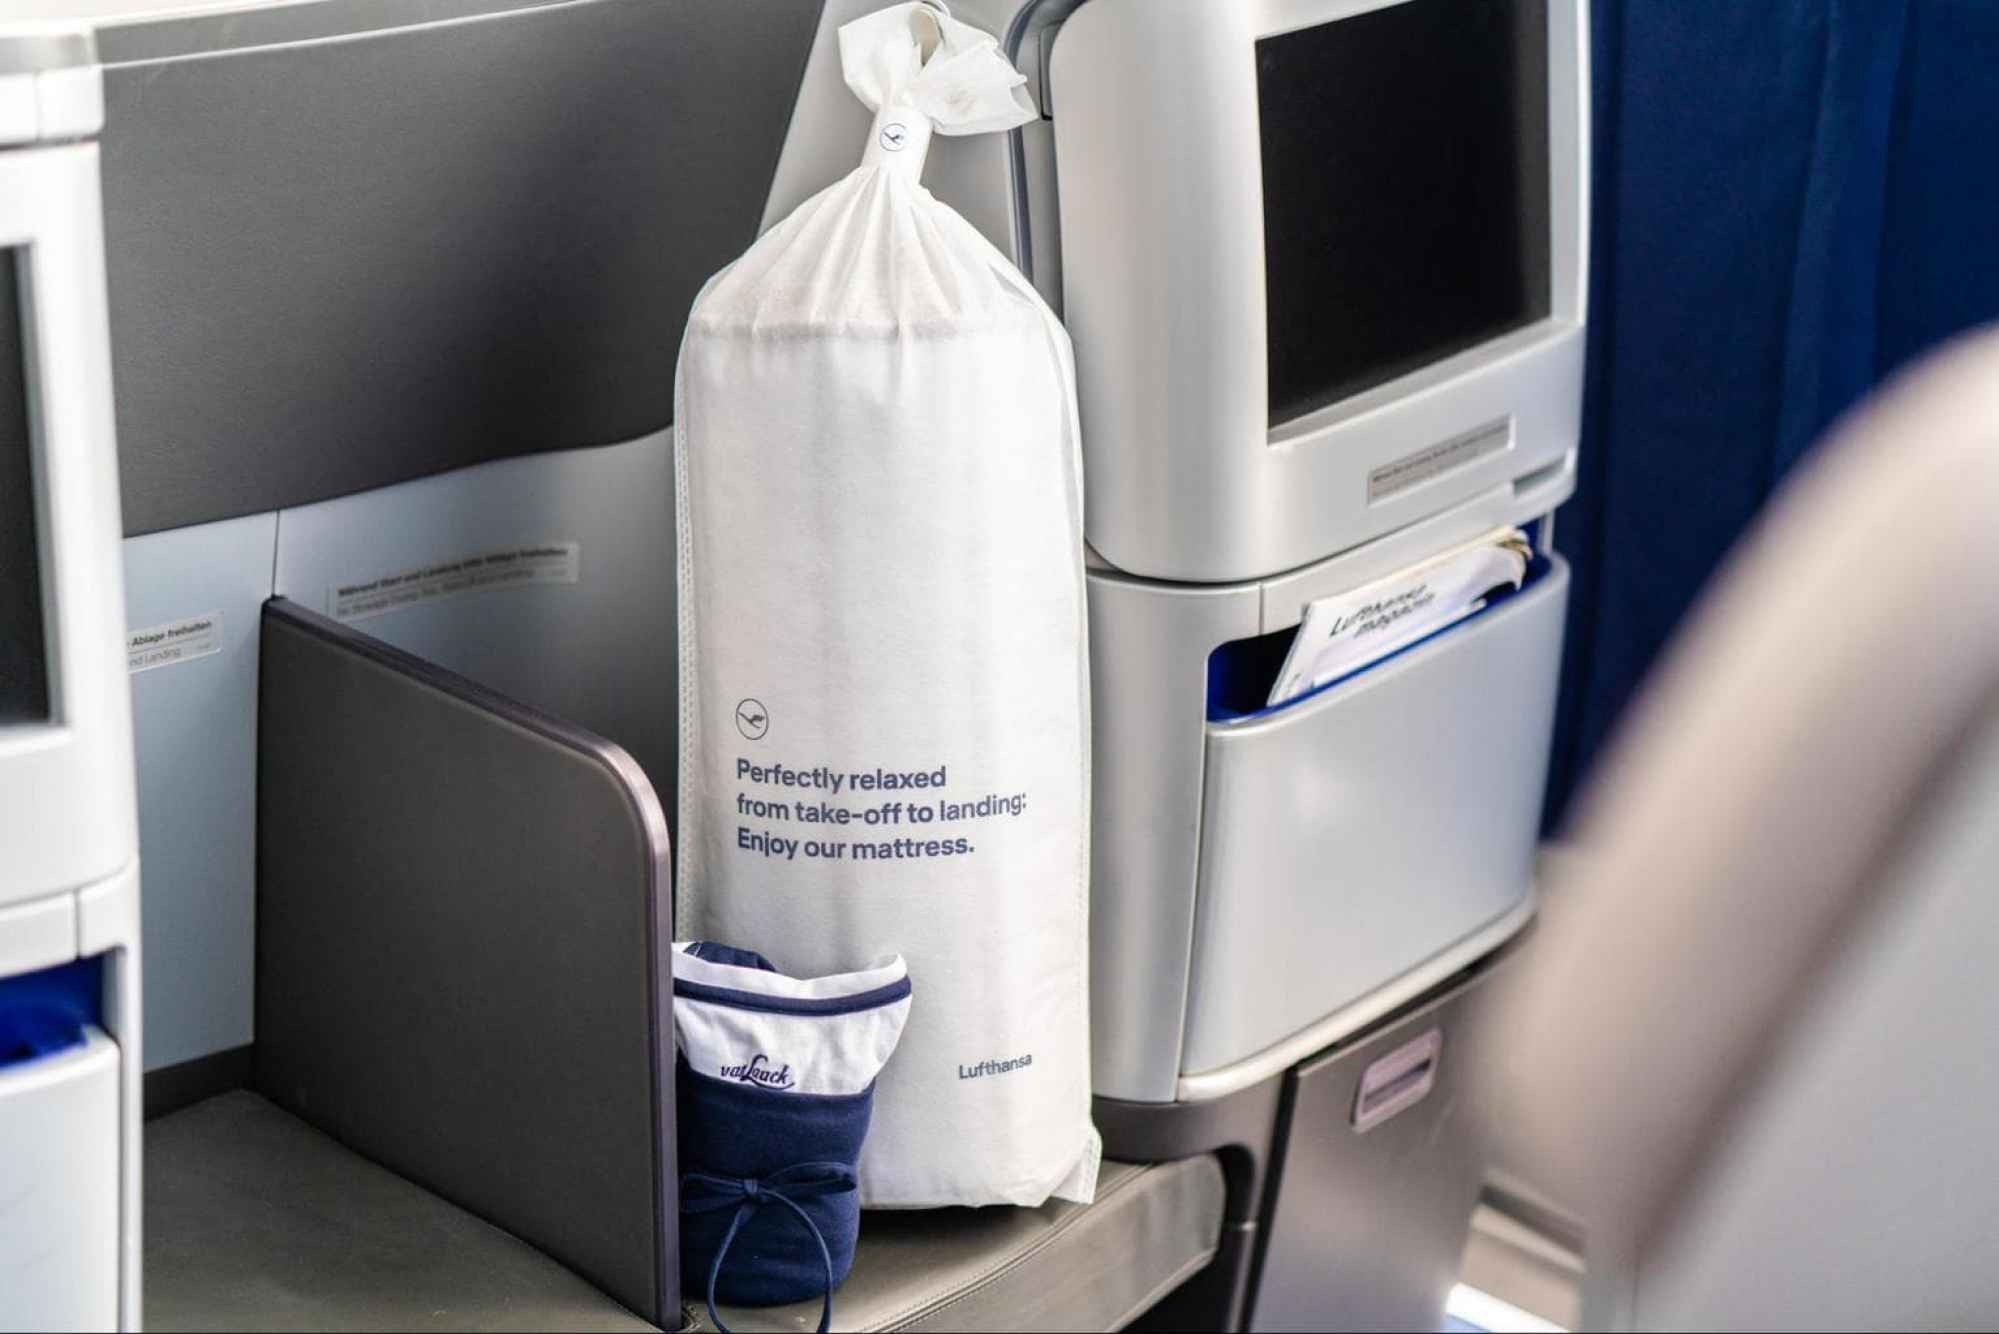 The packaging of Lufthansa's Business Class duvet